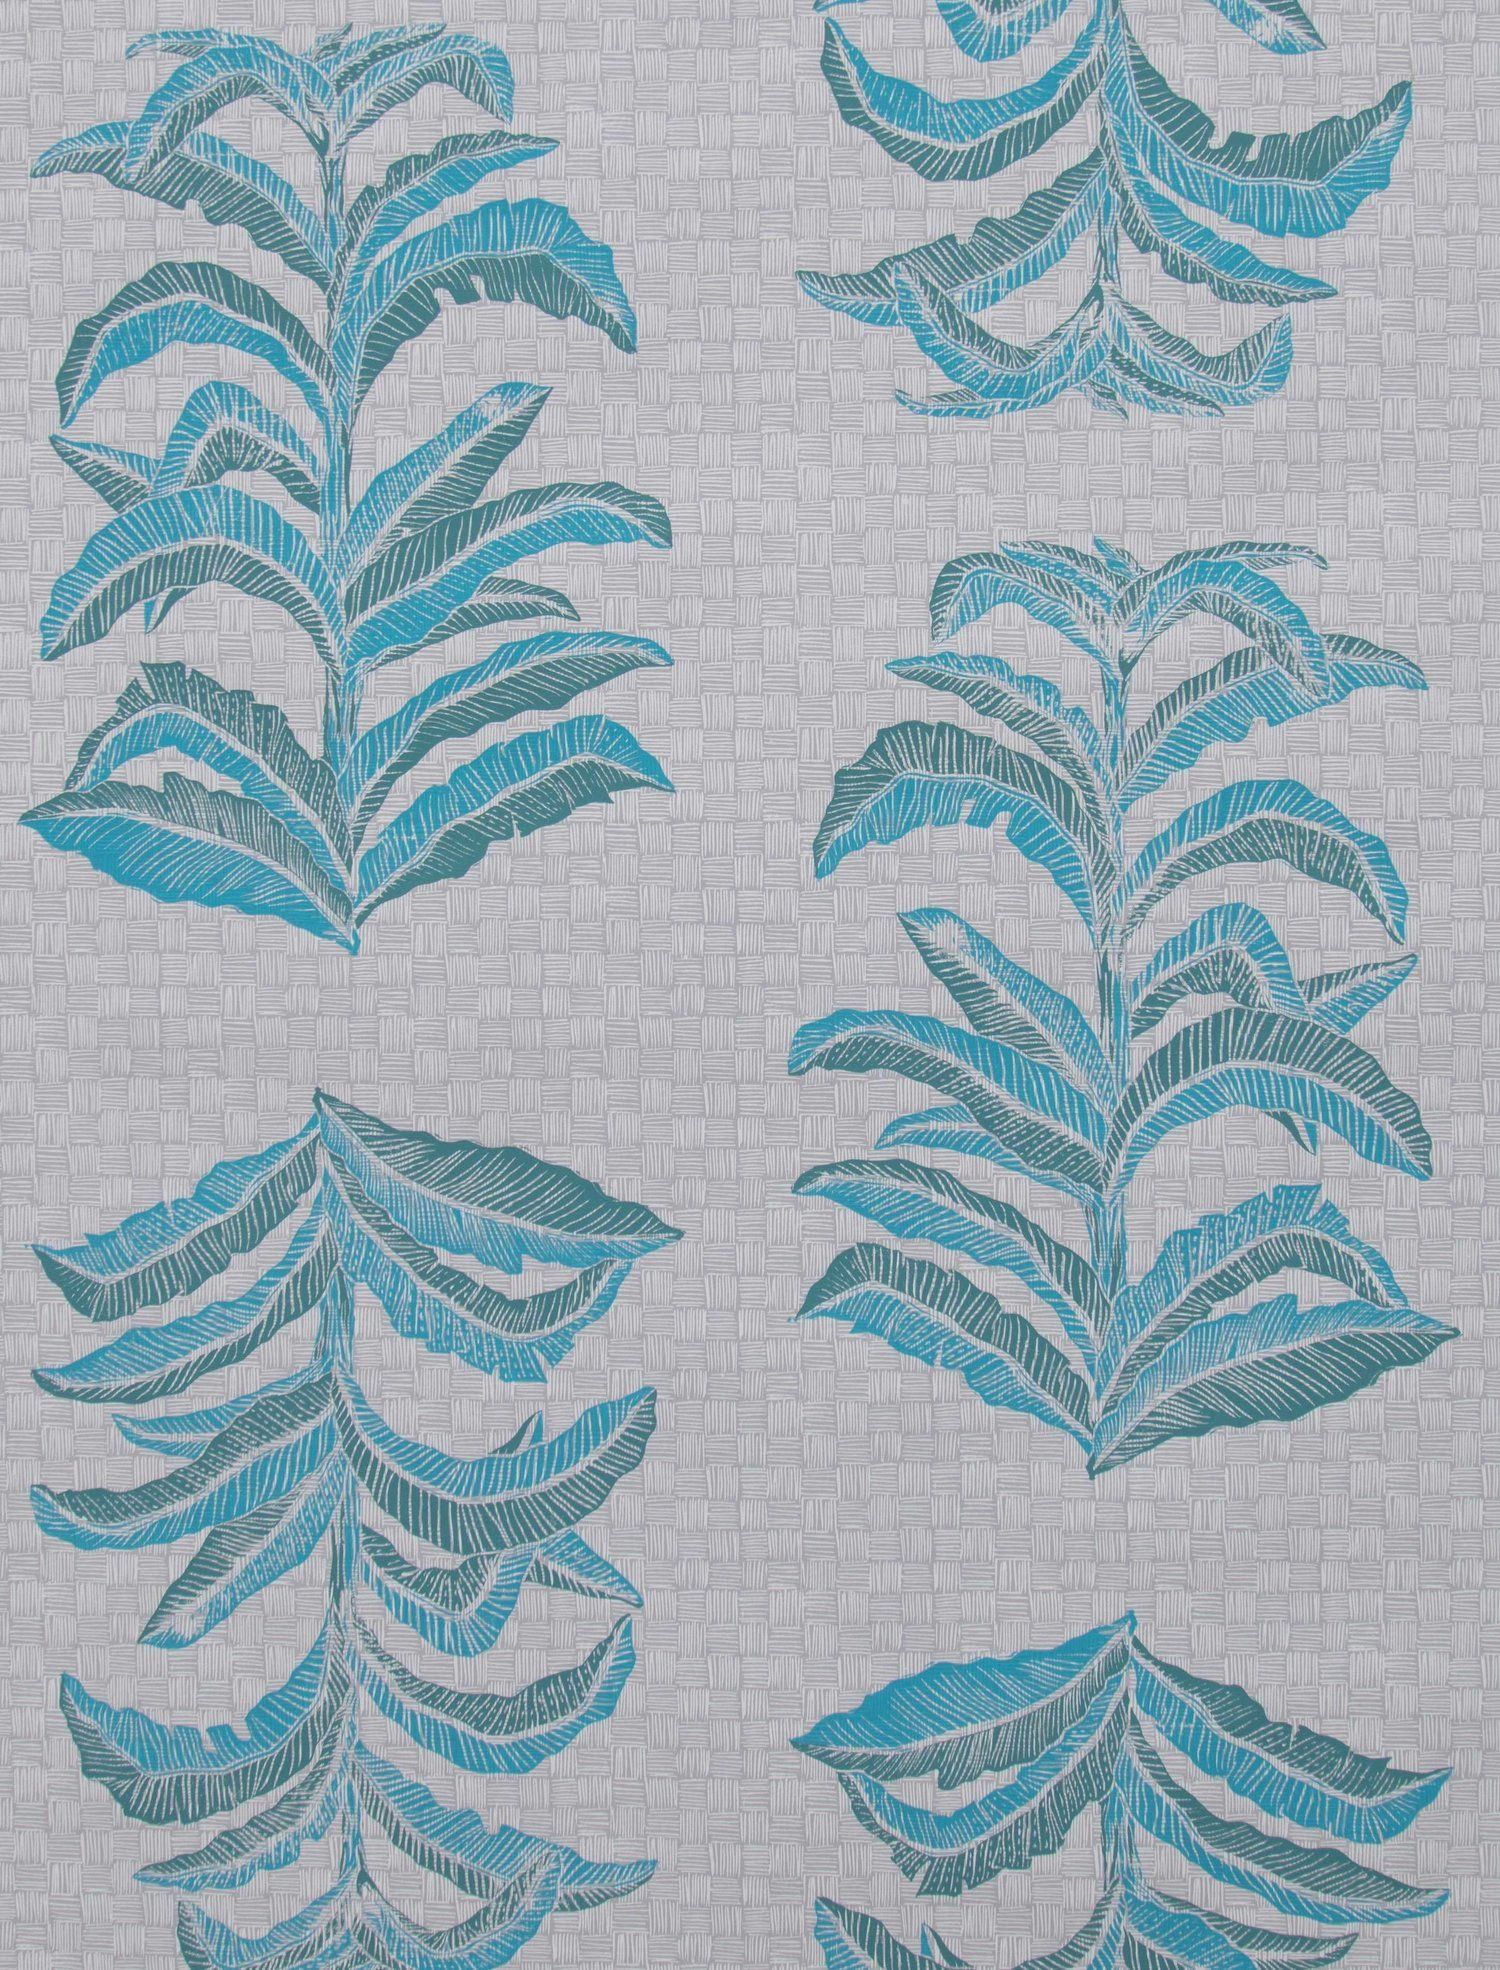 Banana Leaf Wallpaper — Krane Home (With images) Banana